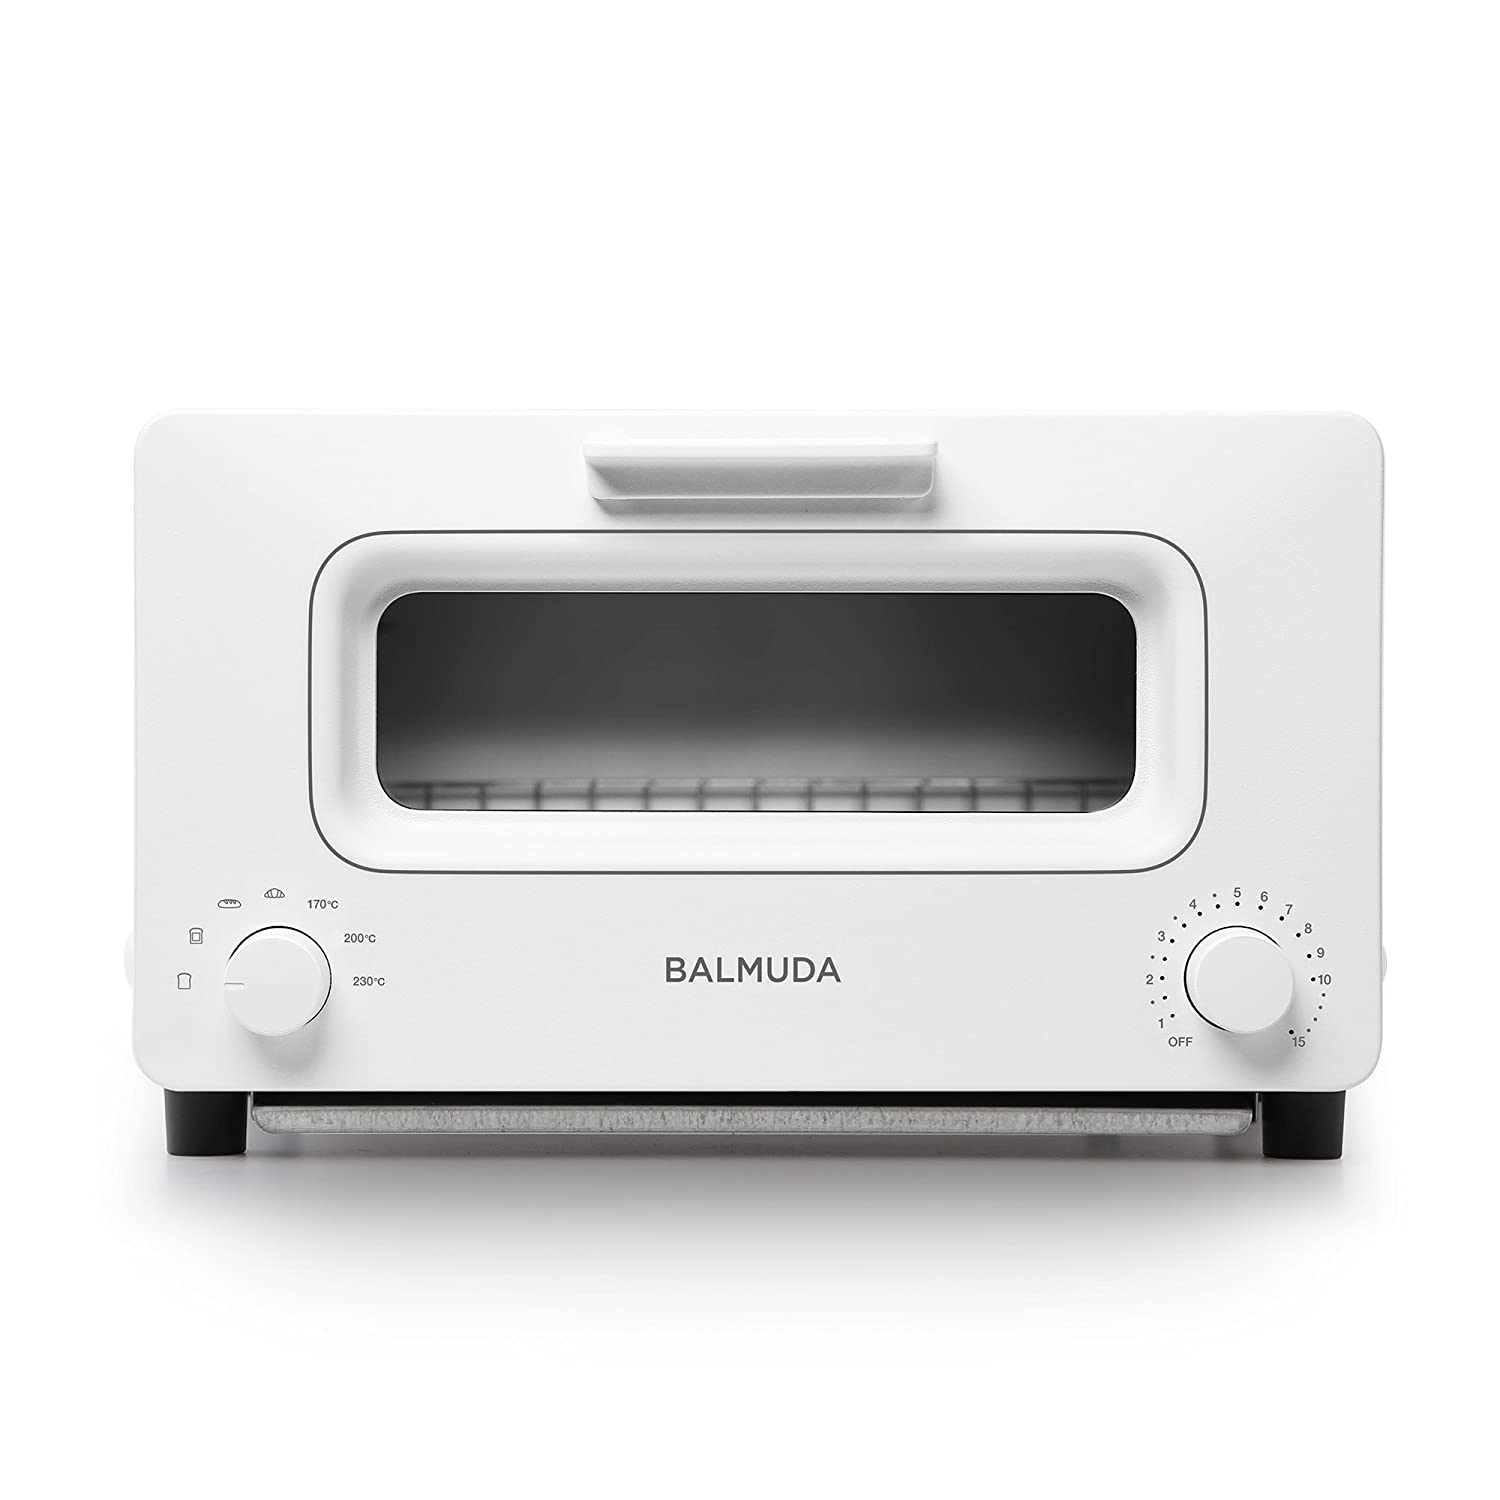 BALMUDA Steam toaster oven